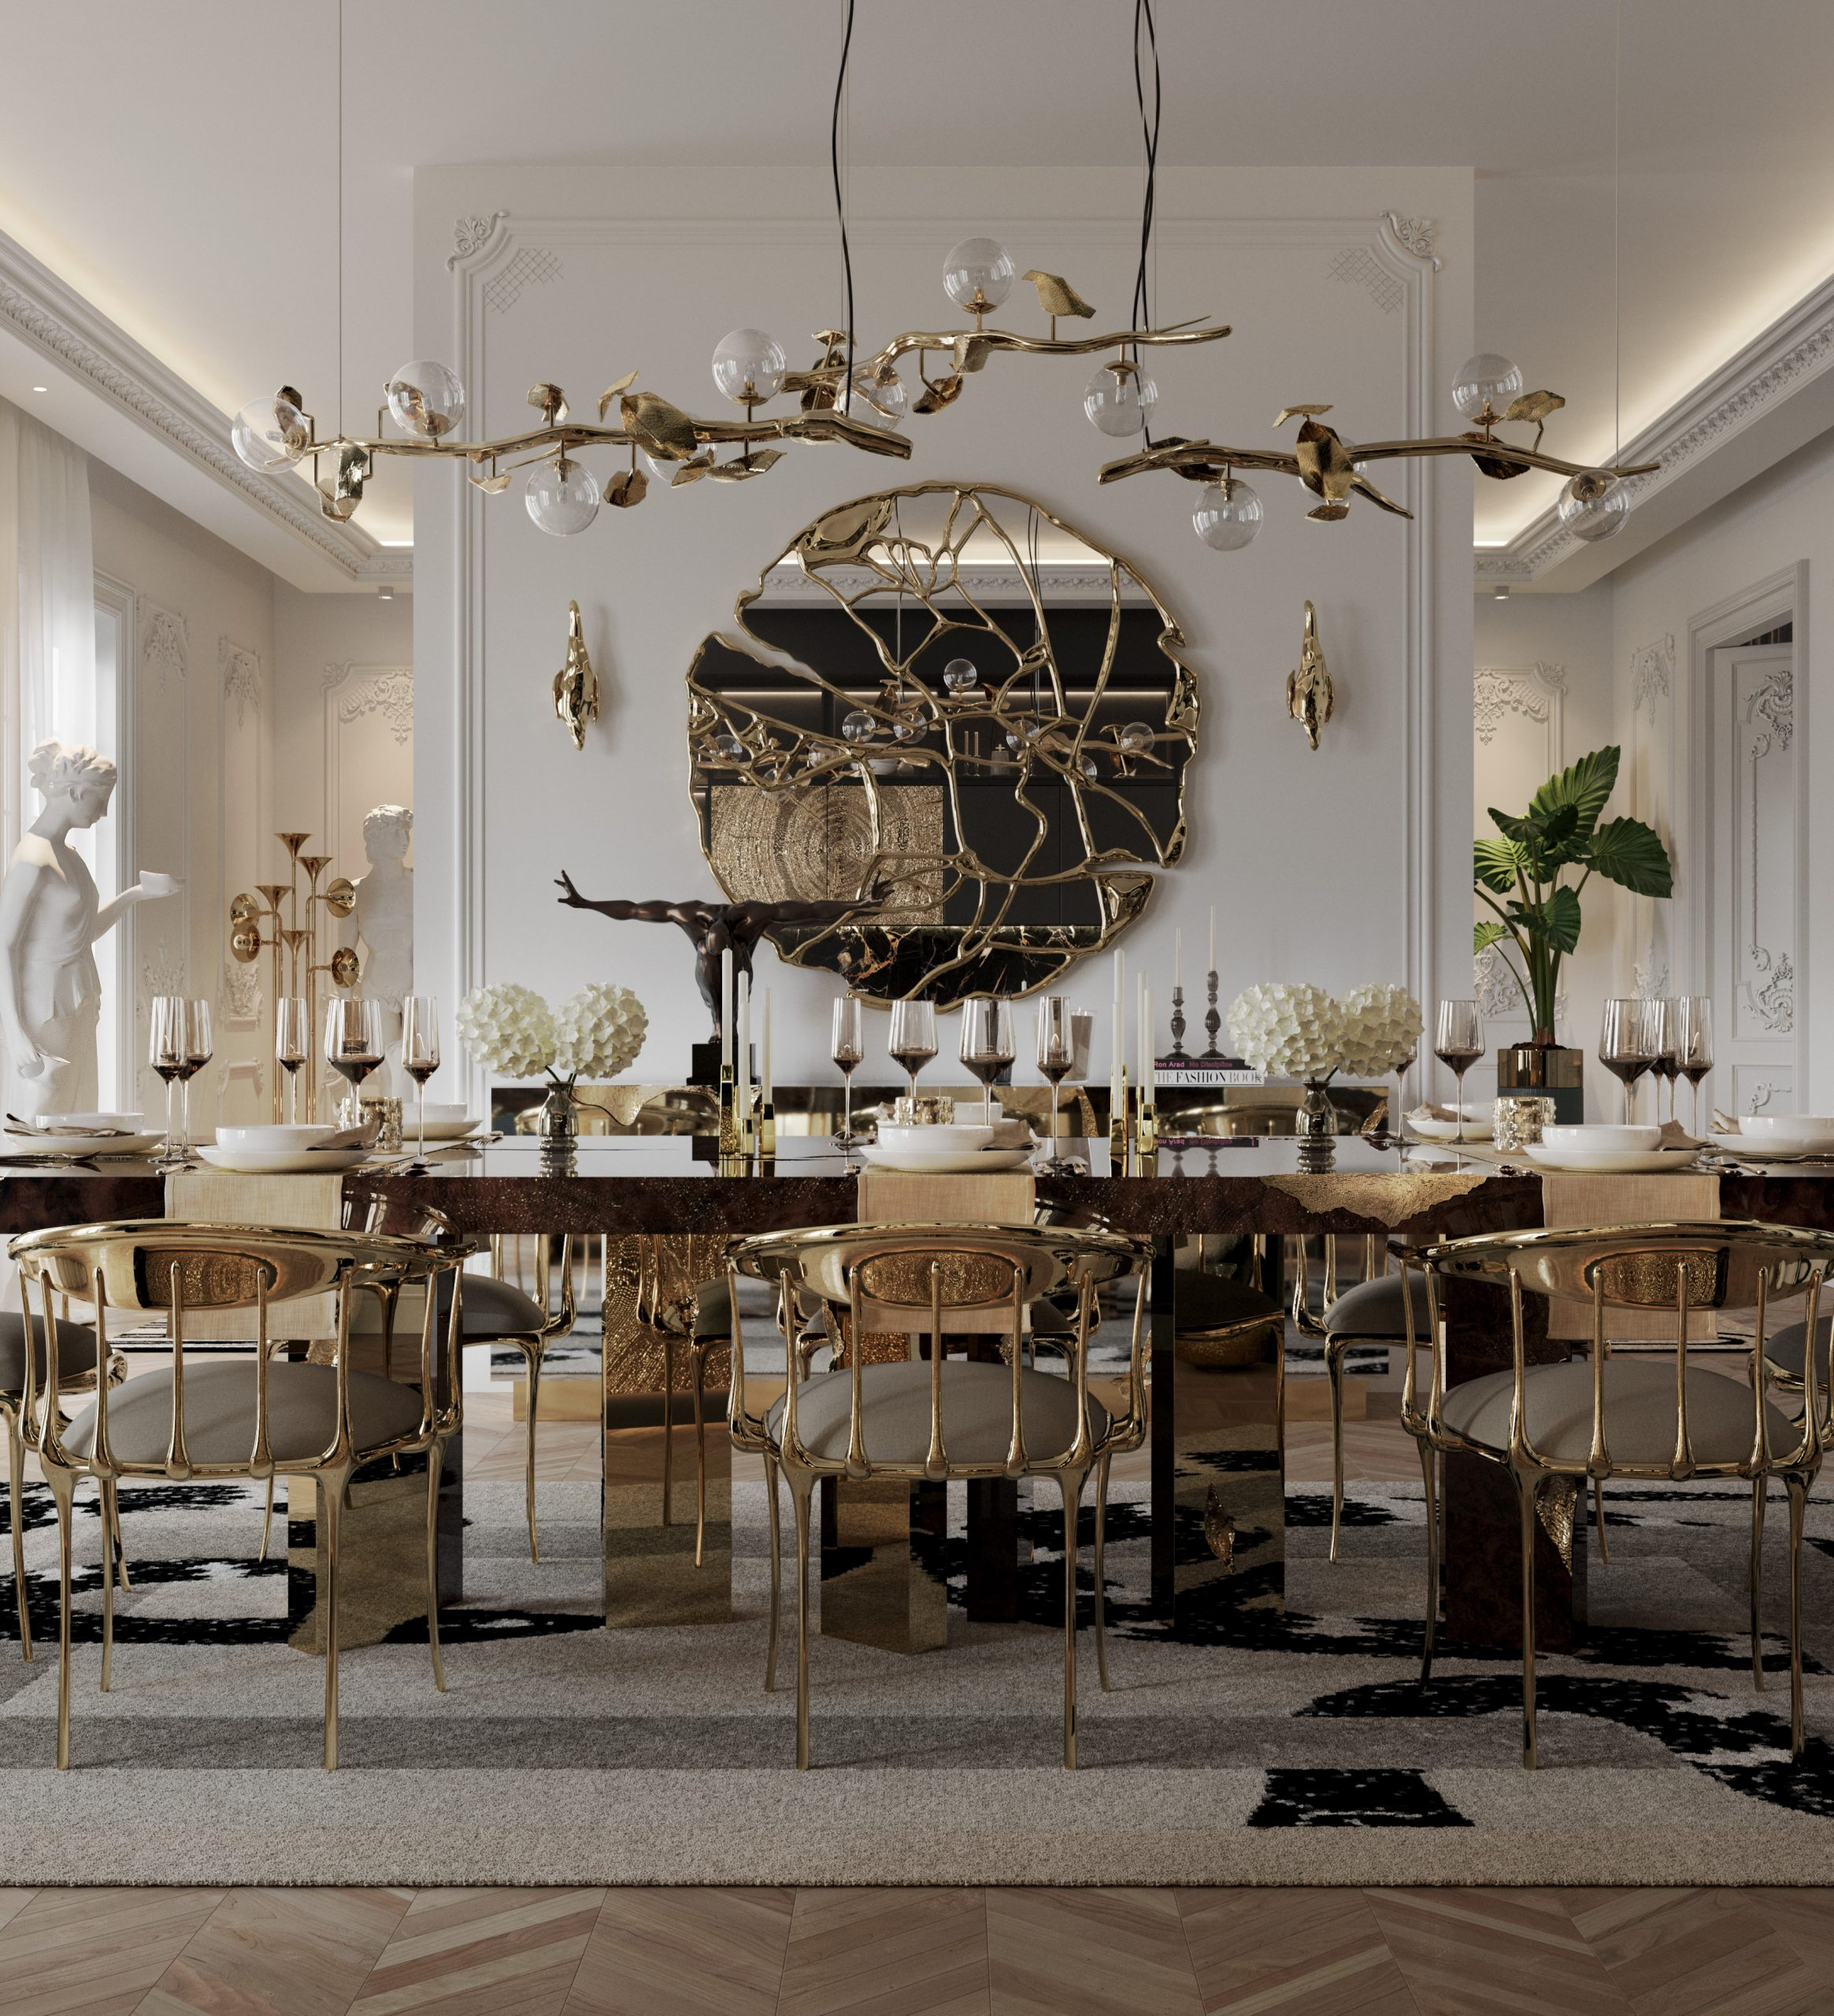 LUXURY DINING ROOM WITH A PARISIAN LOOK